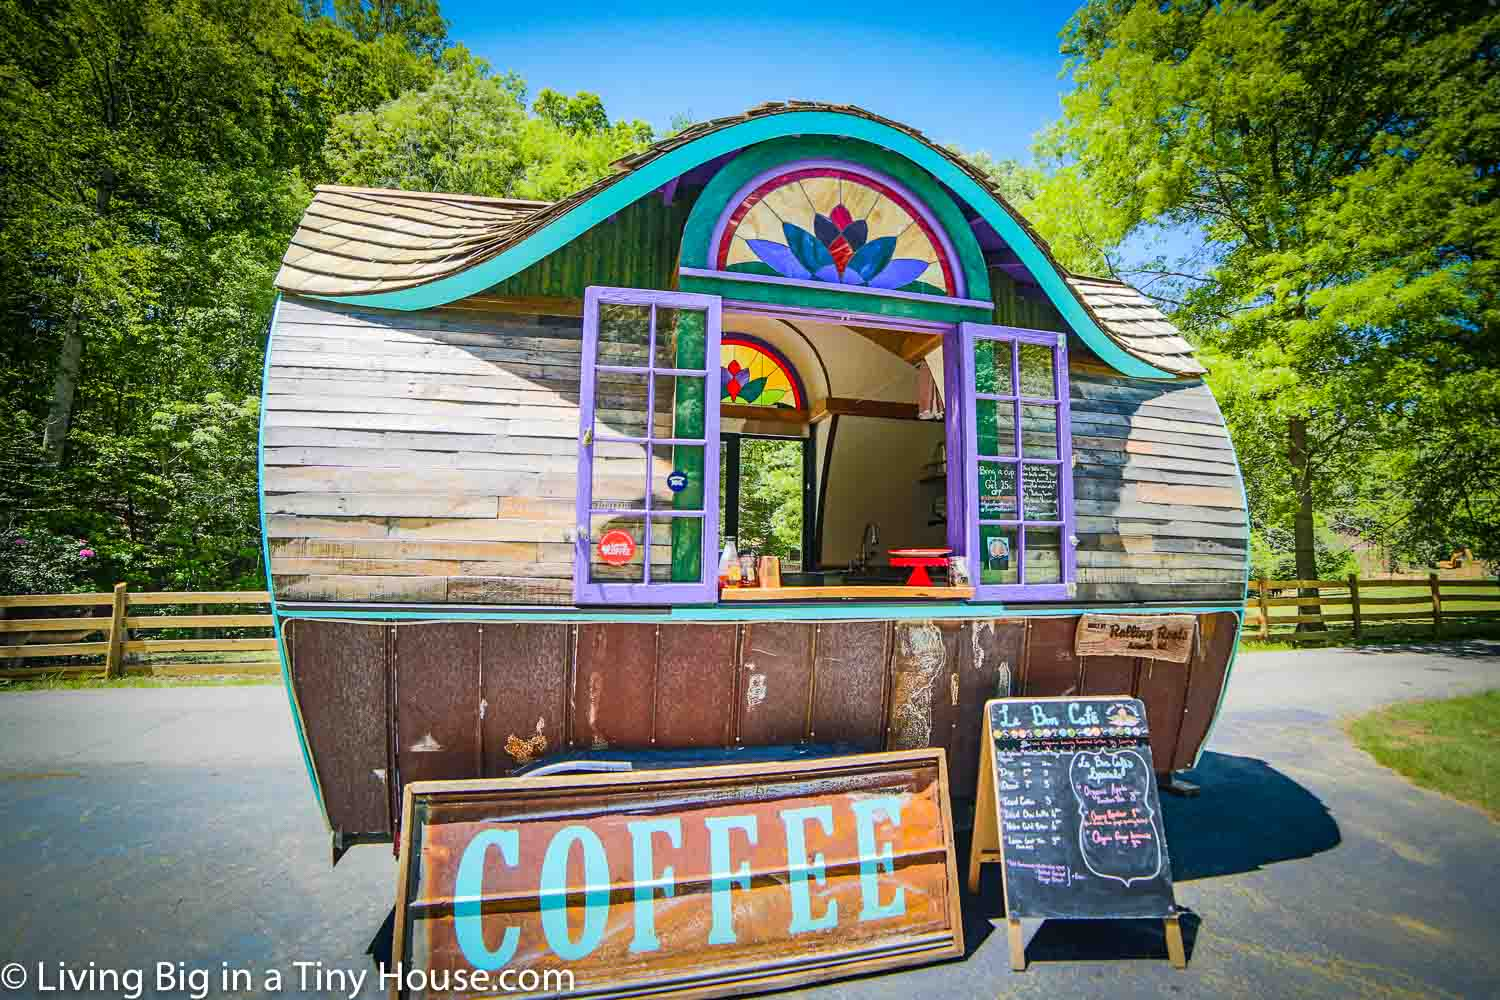 LE-BON-TINY-HOUSE-CAFE-EXTERIOR